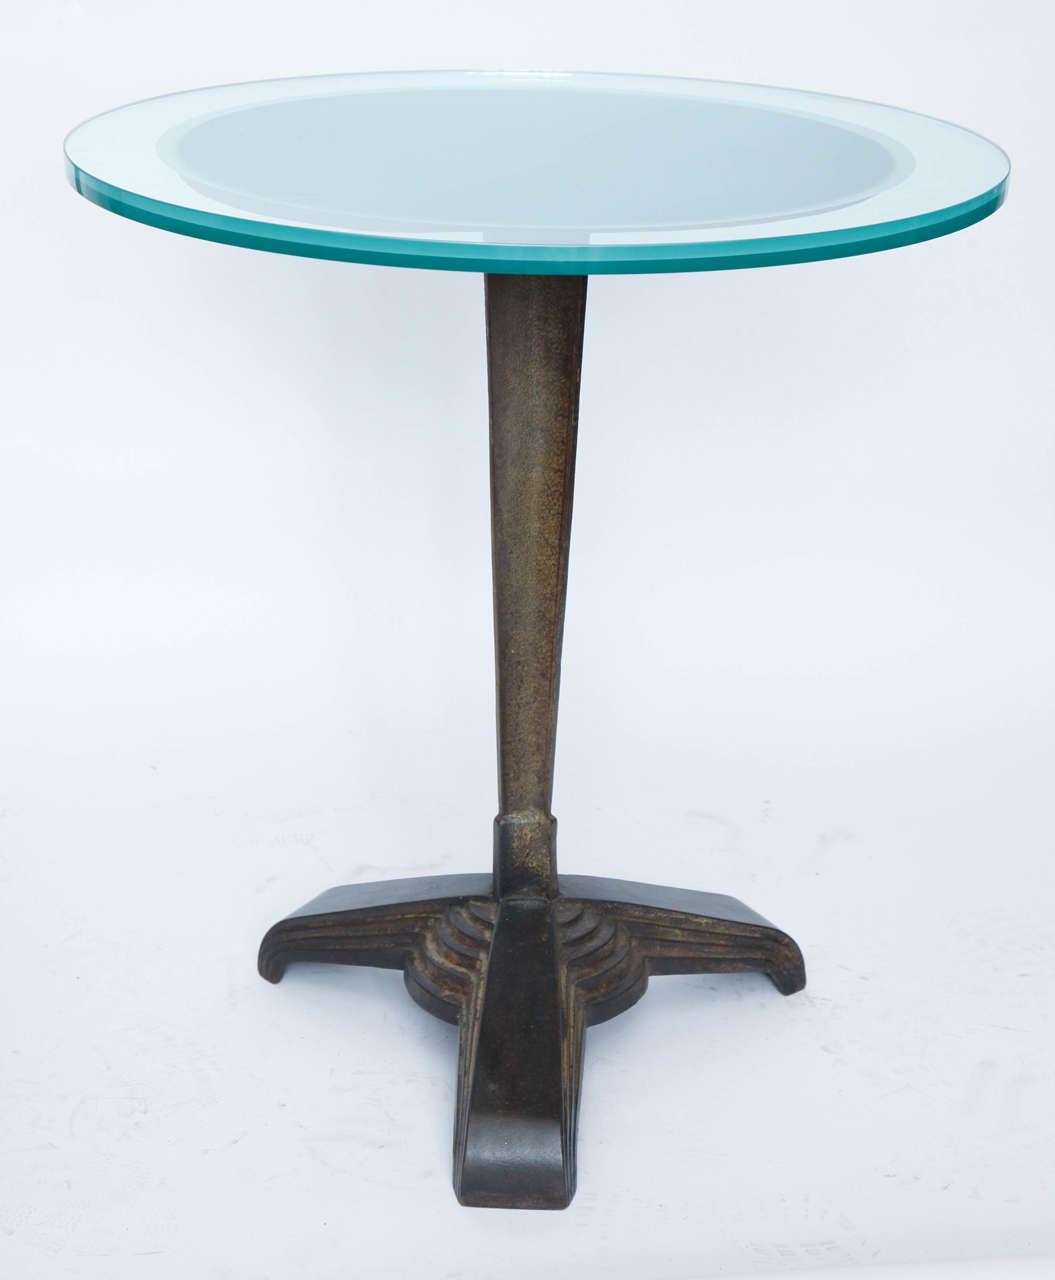 A 1920s American modernist Art Deco Table. Glass top not included